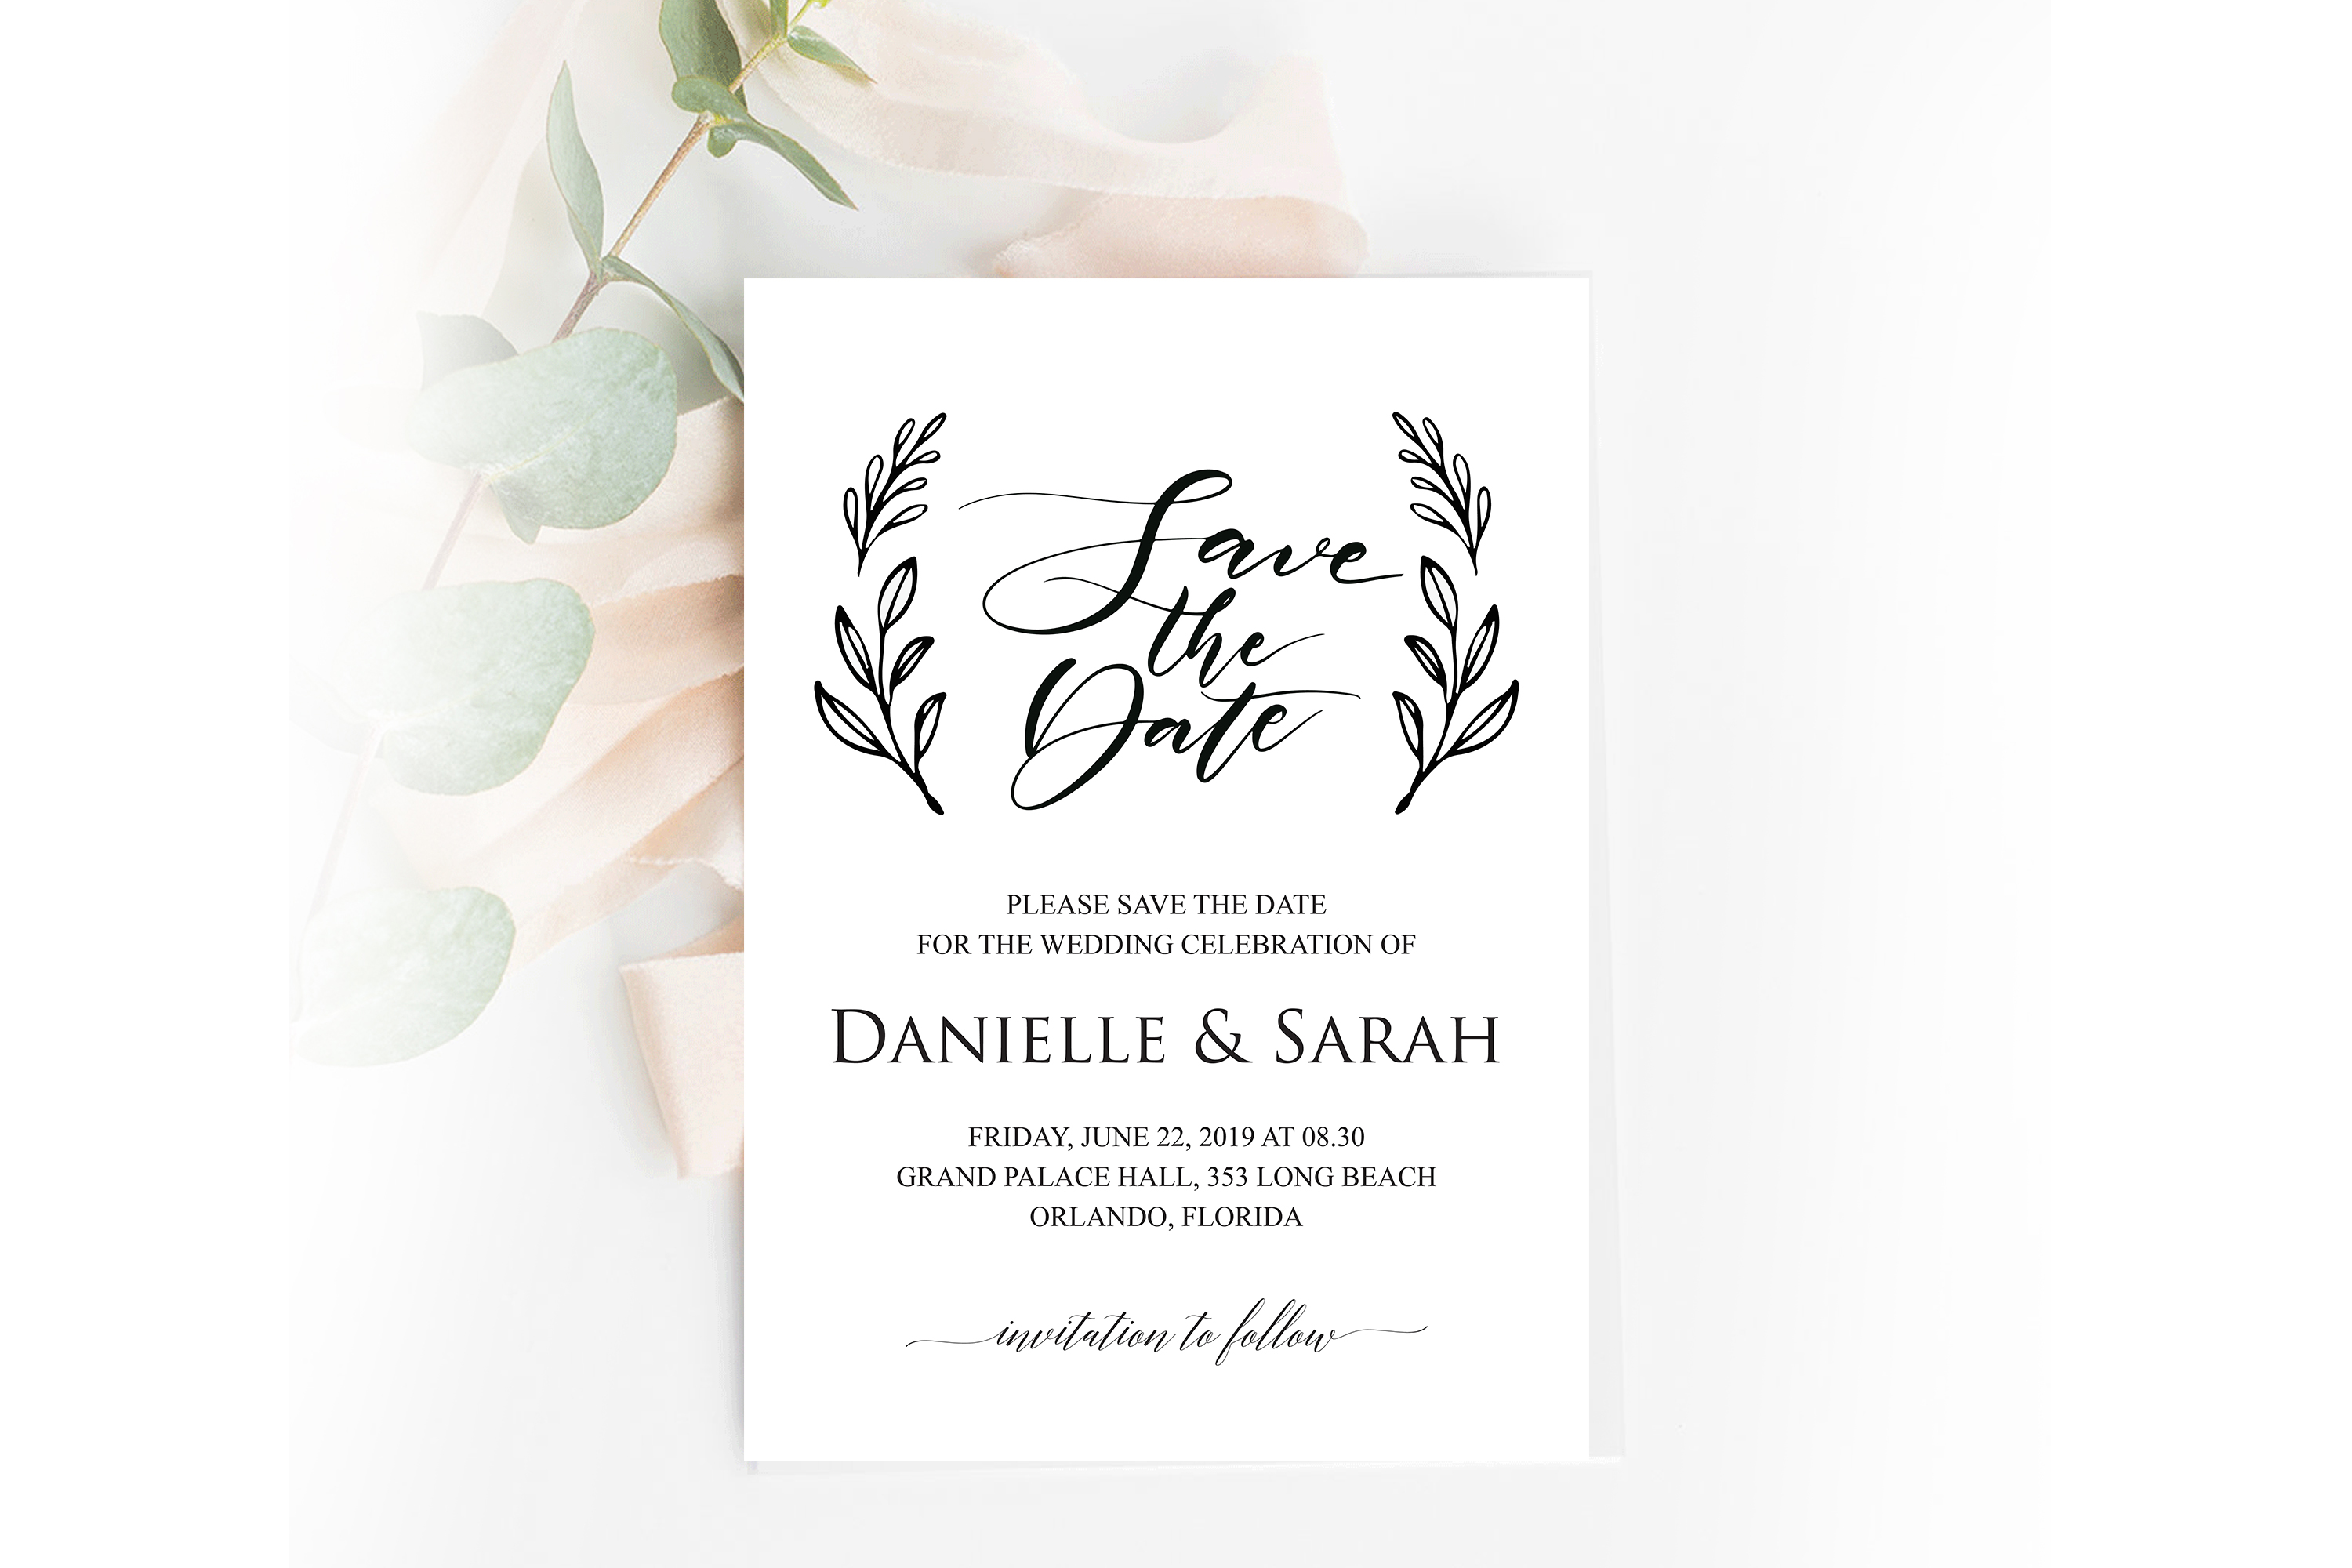 Save The Date Invitation Save The Date Template